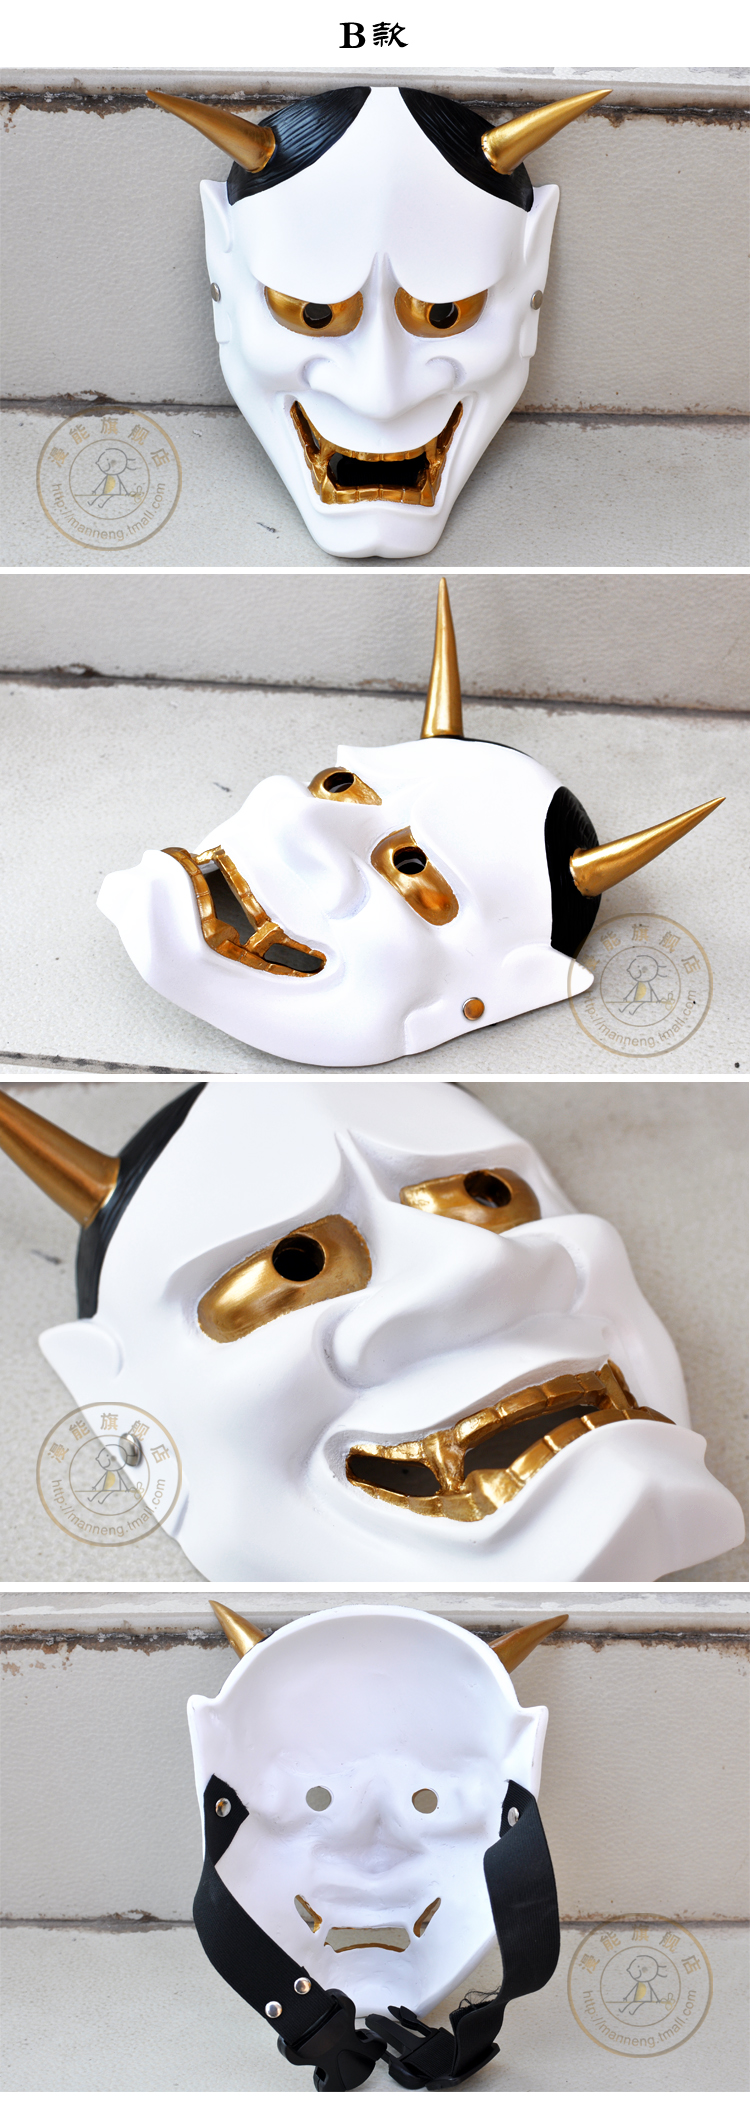 Cartton Creative Decorative Naruto Cosplay Mask